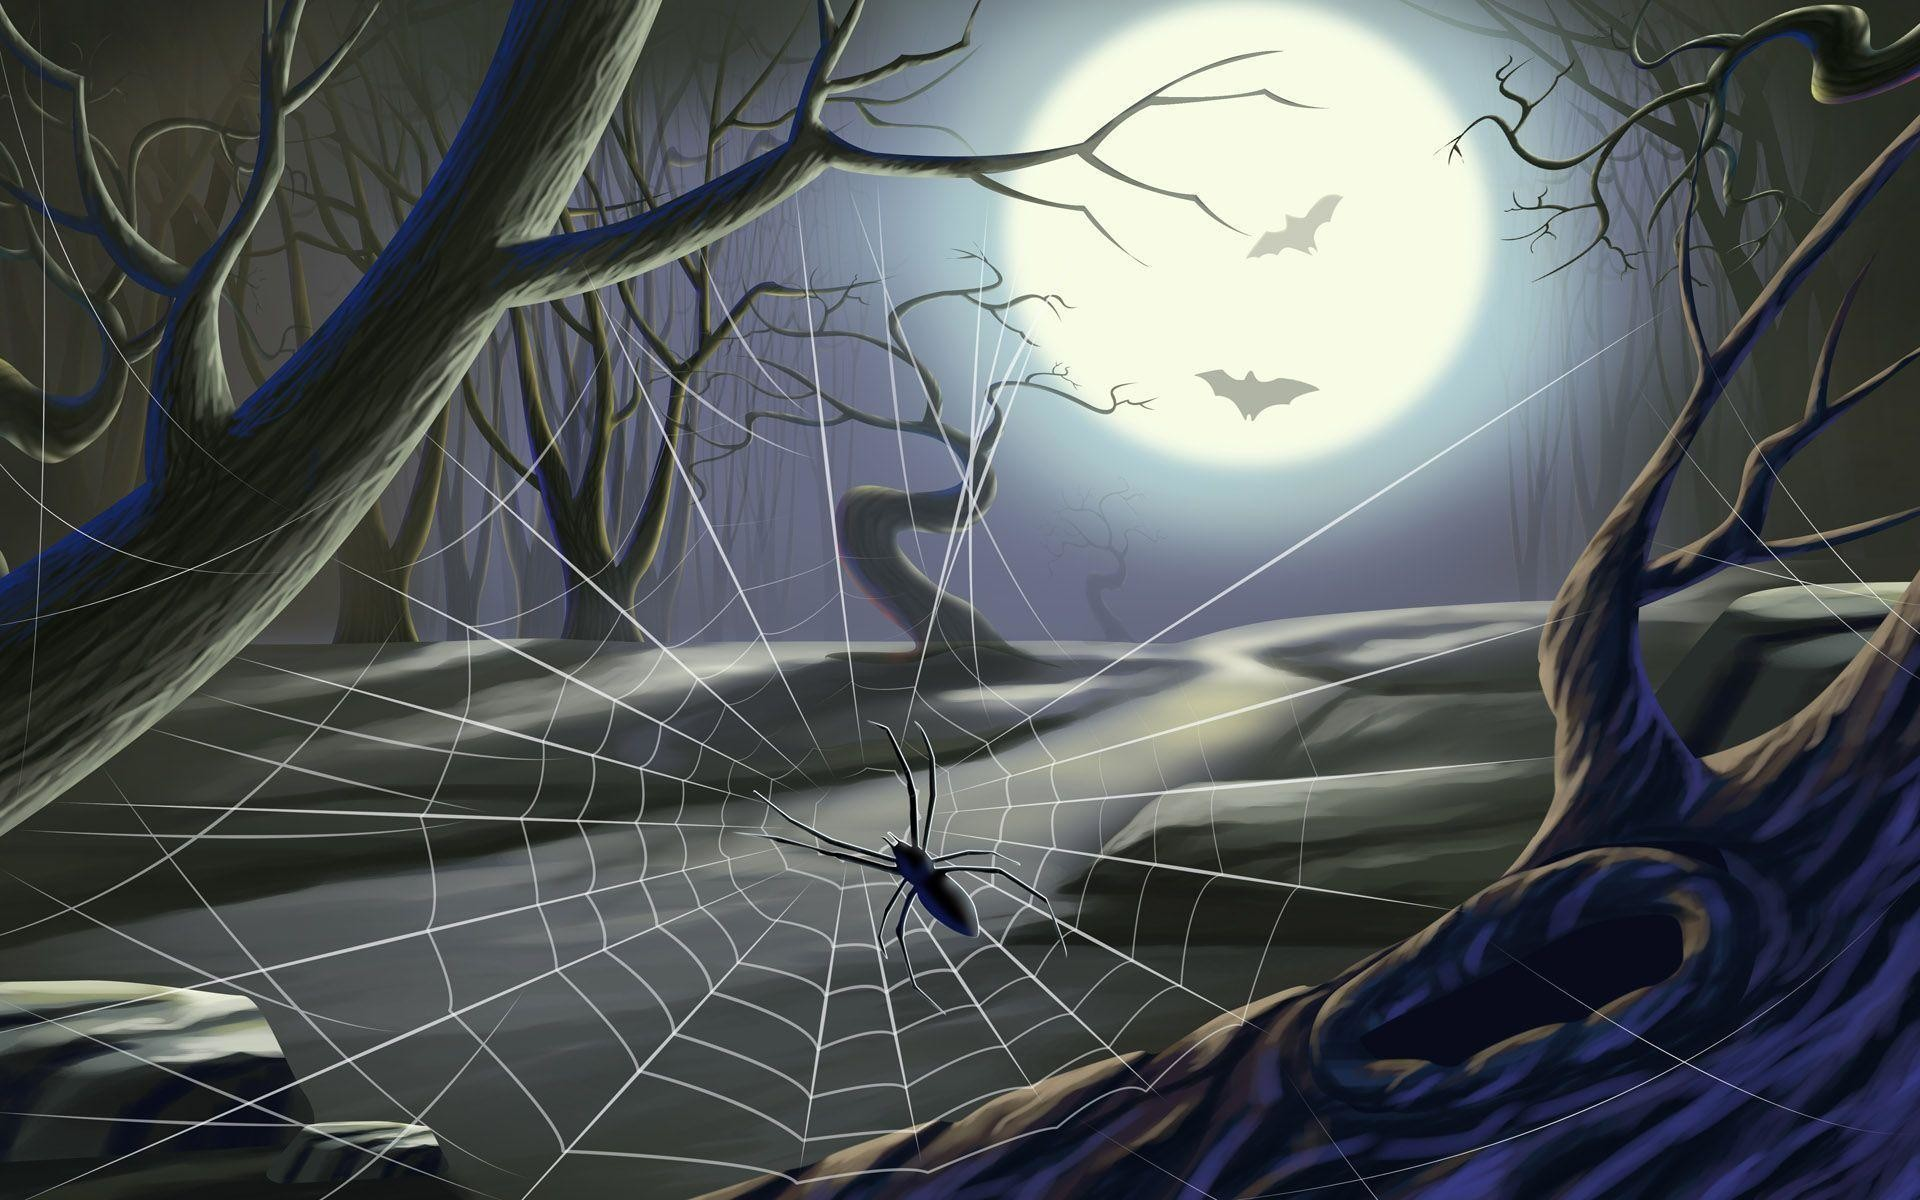 1920x1200 Spider on a Spider Web Wallpapers - HD Wallpapers Inn